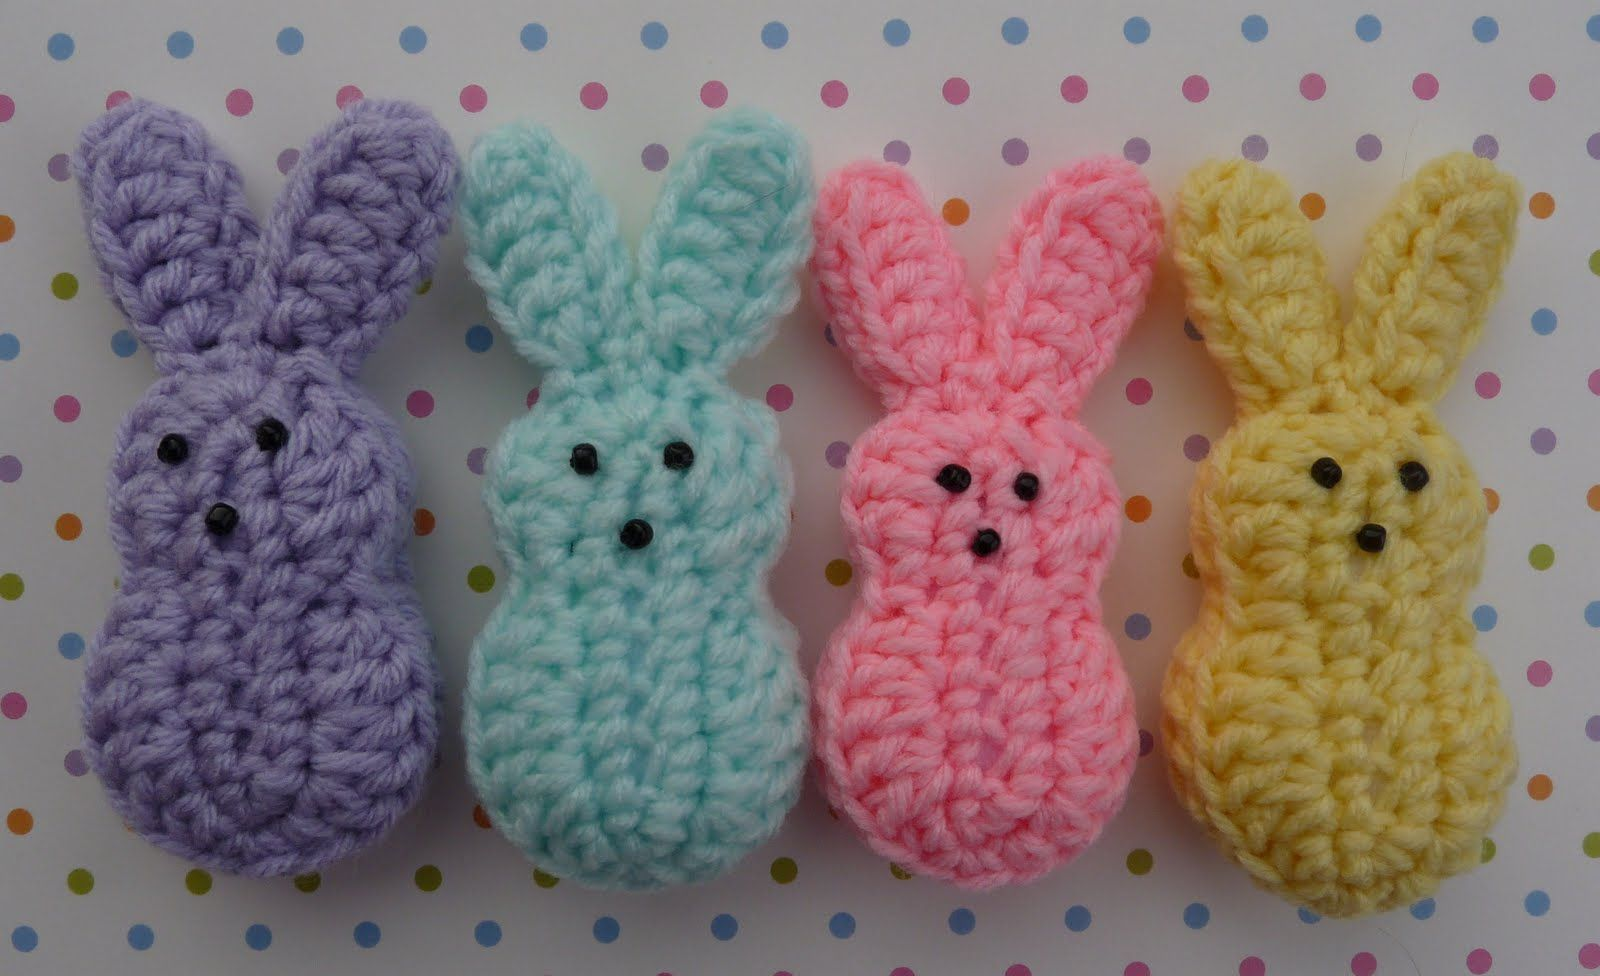 Ive been working on making some things for easter baskets and freecrochet marshmallow bunny pattern its almost easter these would be perfect cat toys presents or even decorations to get you in the spring spirit negle Gallery